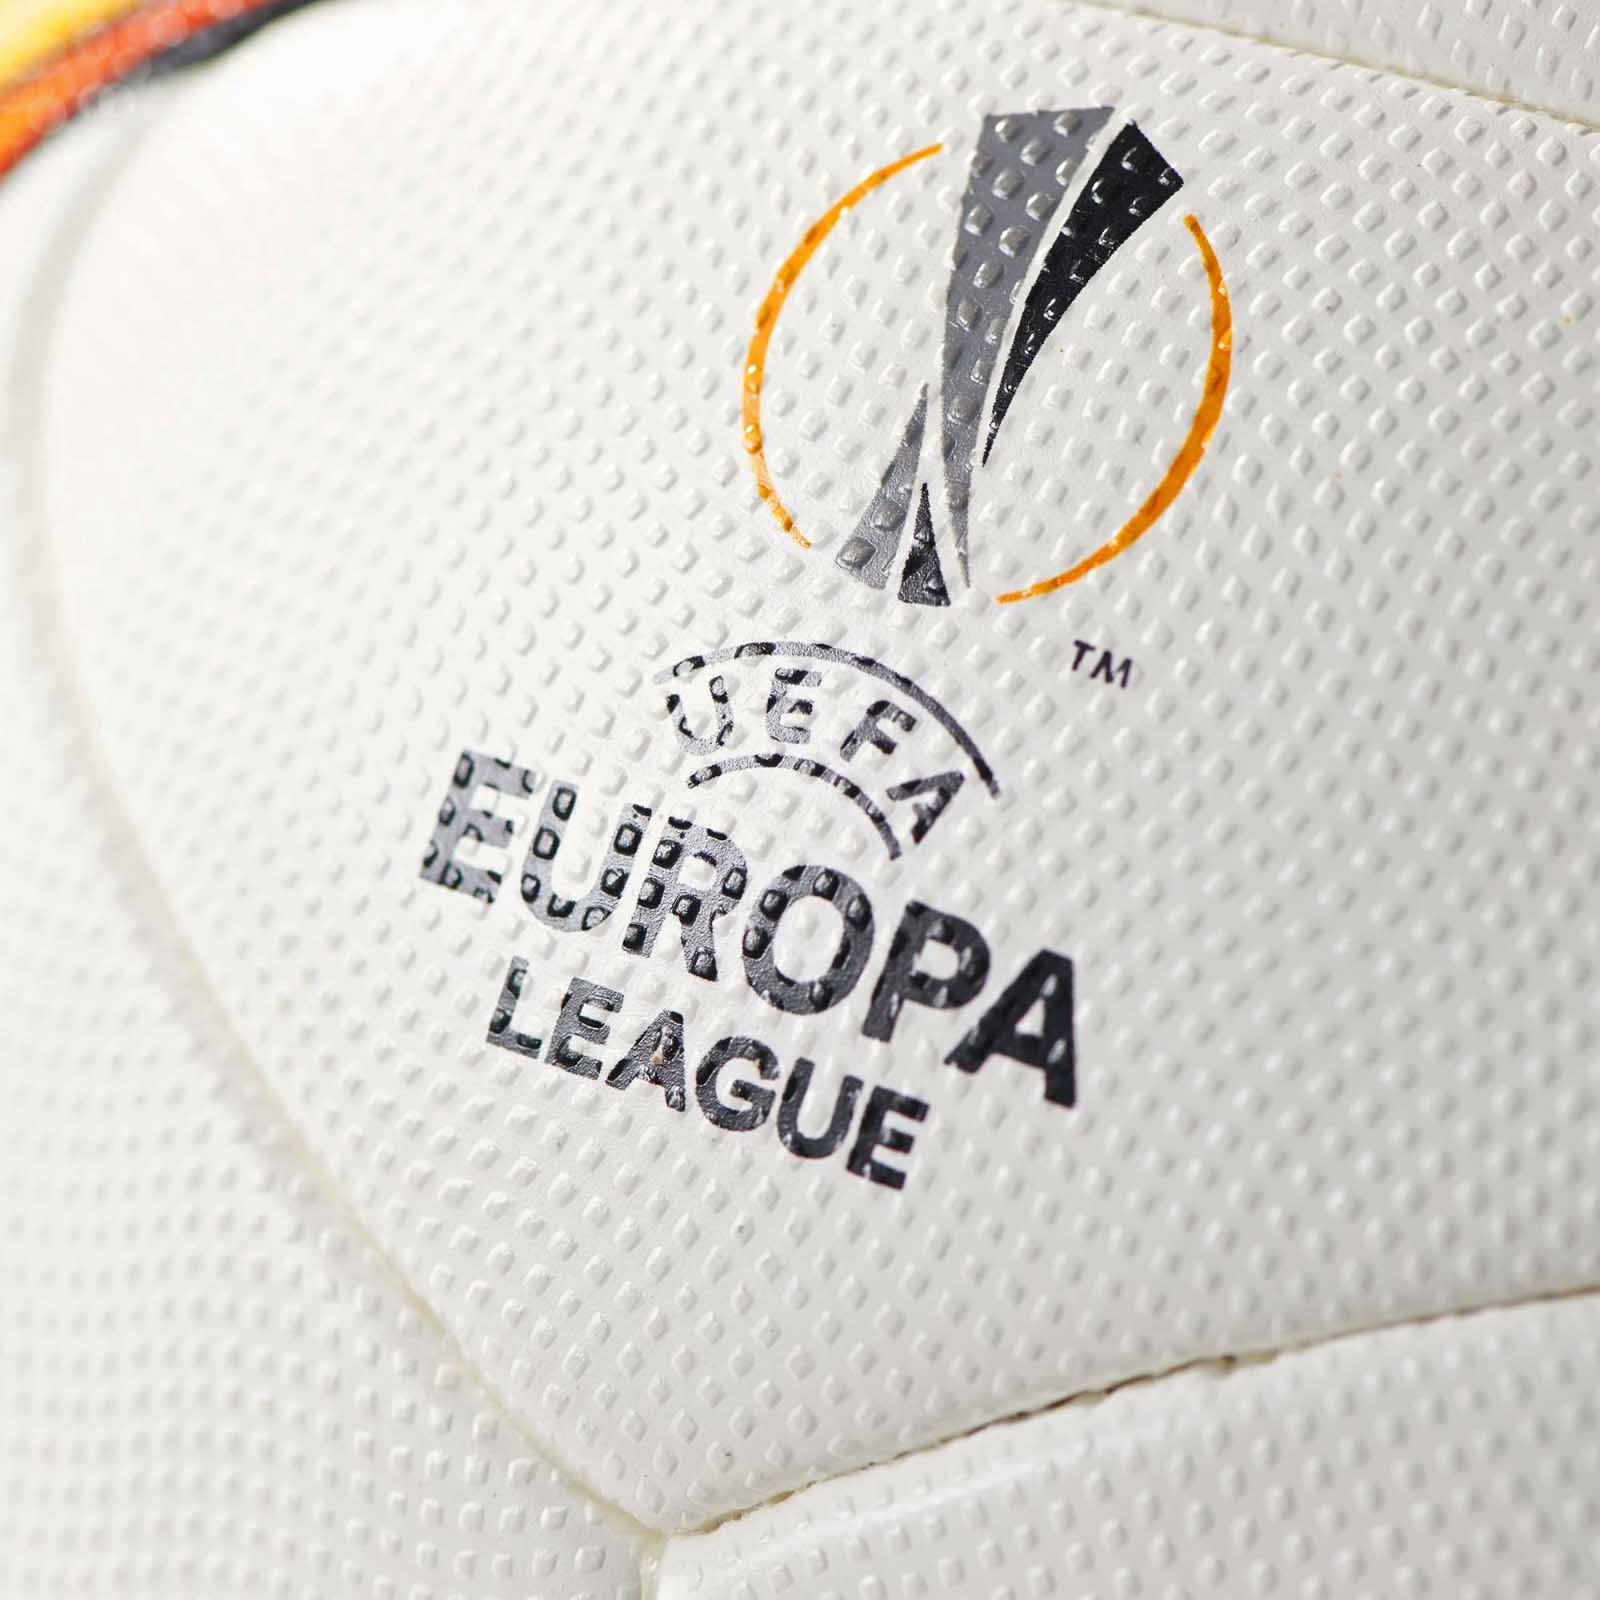 Rojadirecta CHELSEA ARSENAL Streaming Gratis Finale Europa League, dove vederla legamente.